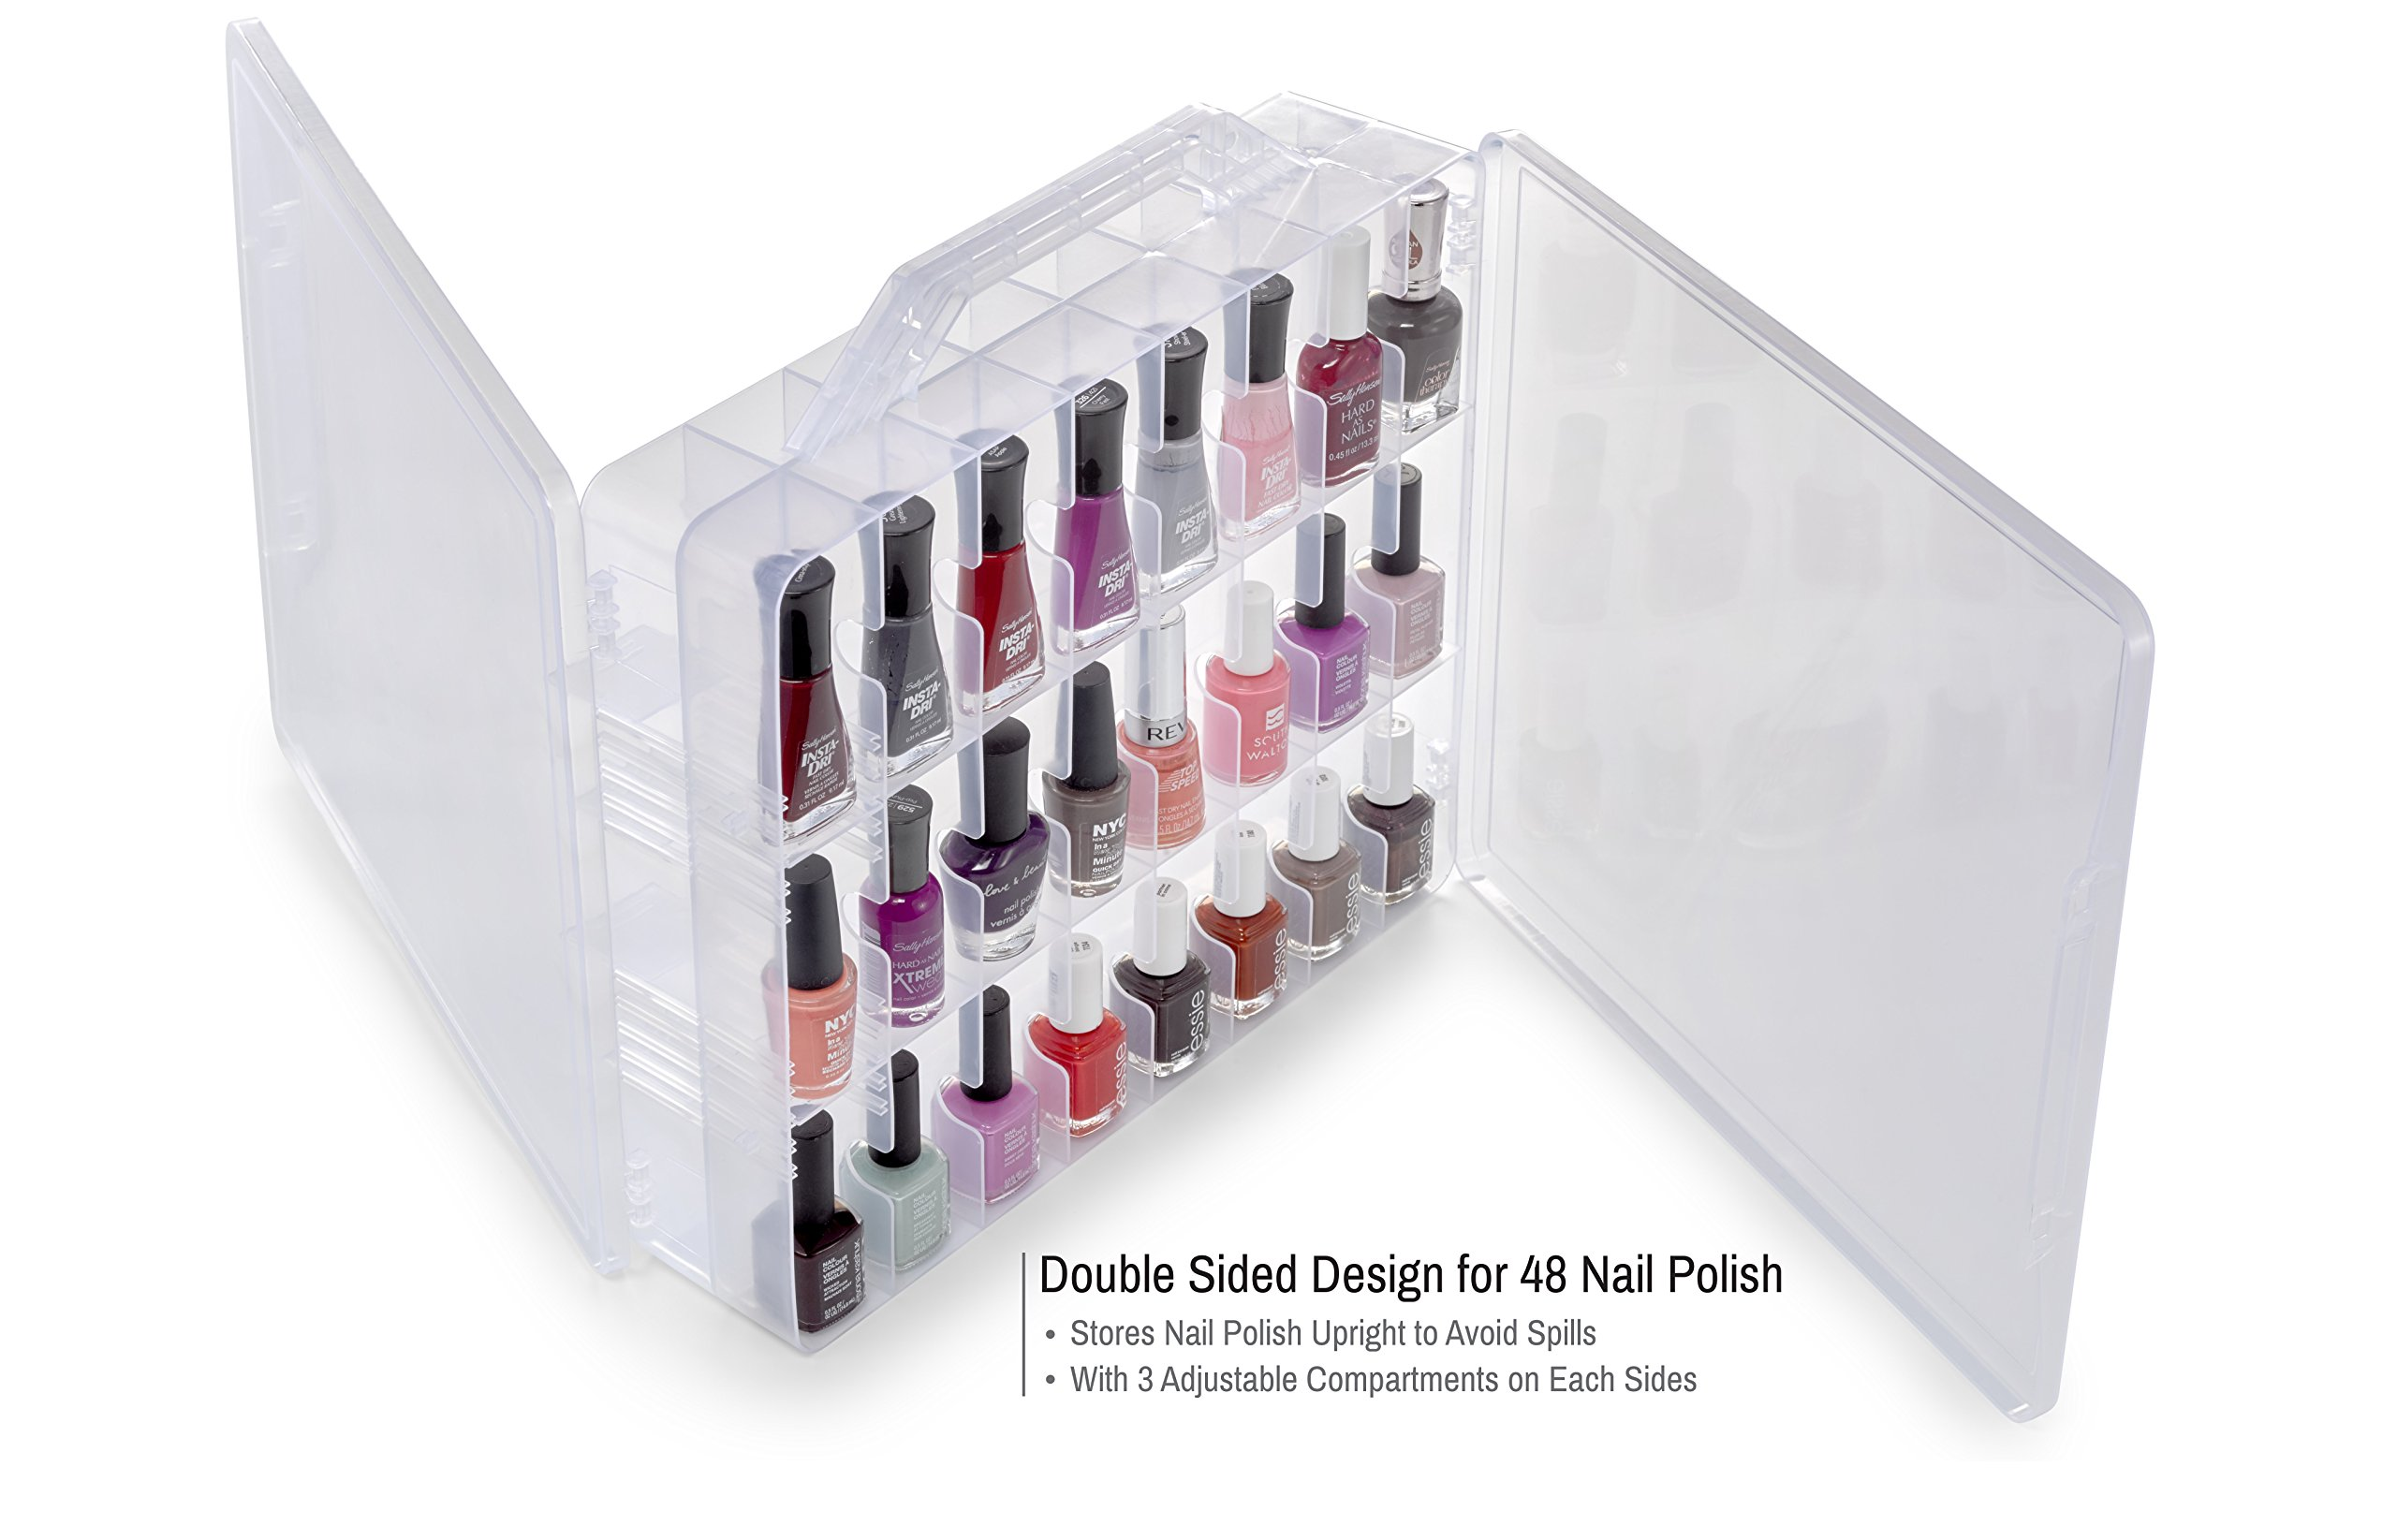 Bins & Things Nail Polish Organizer | Thread Spools Storage Case (48 Slots) Heavy-Duty Sewing, Embroidery, and Craft Box | Essential Oils Organizer | Travel-Friendly Carry Handle